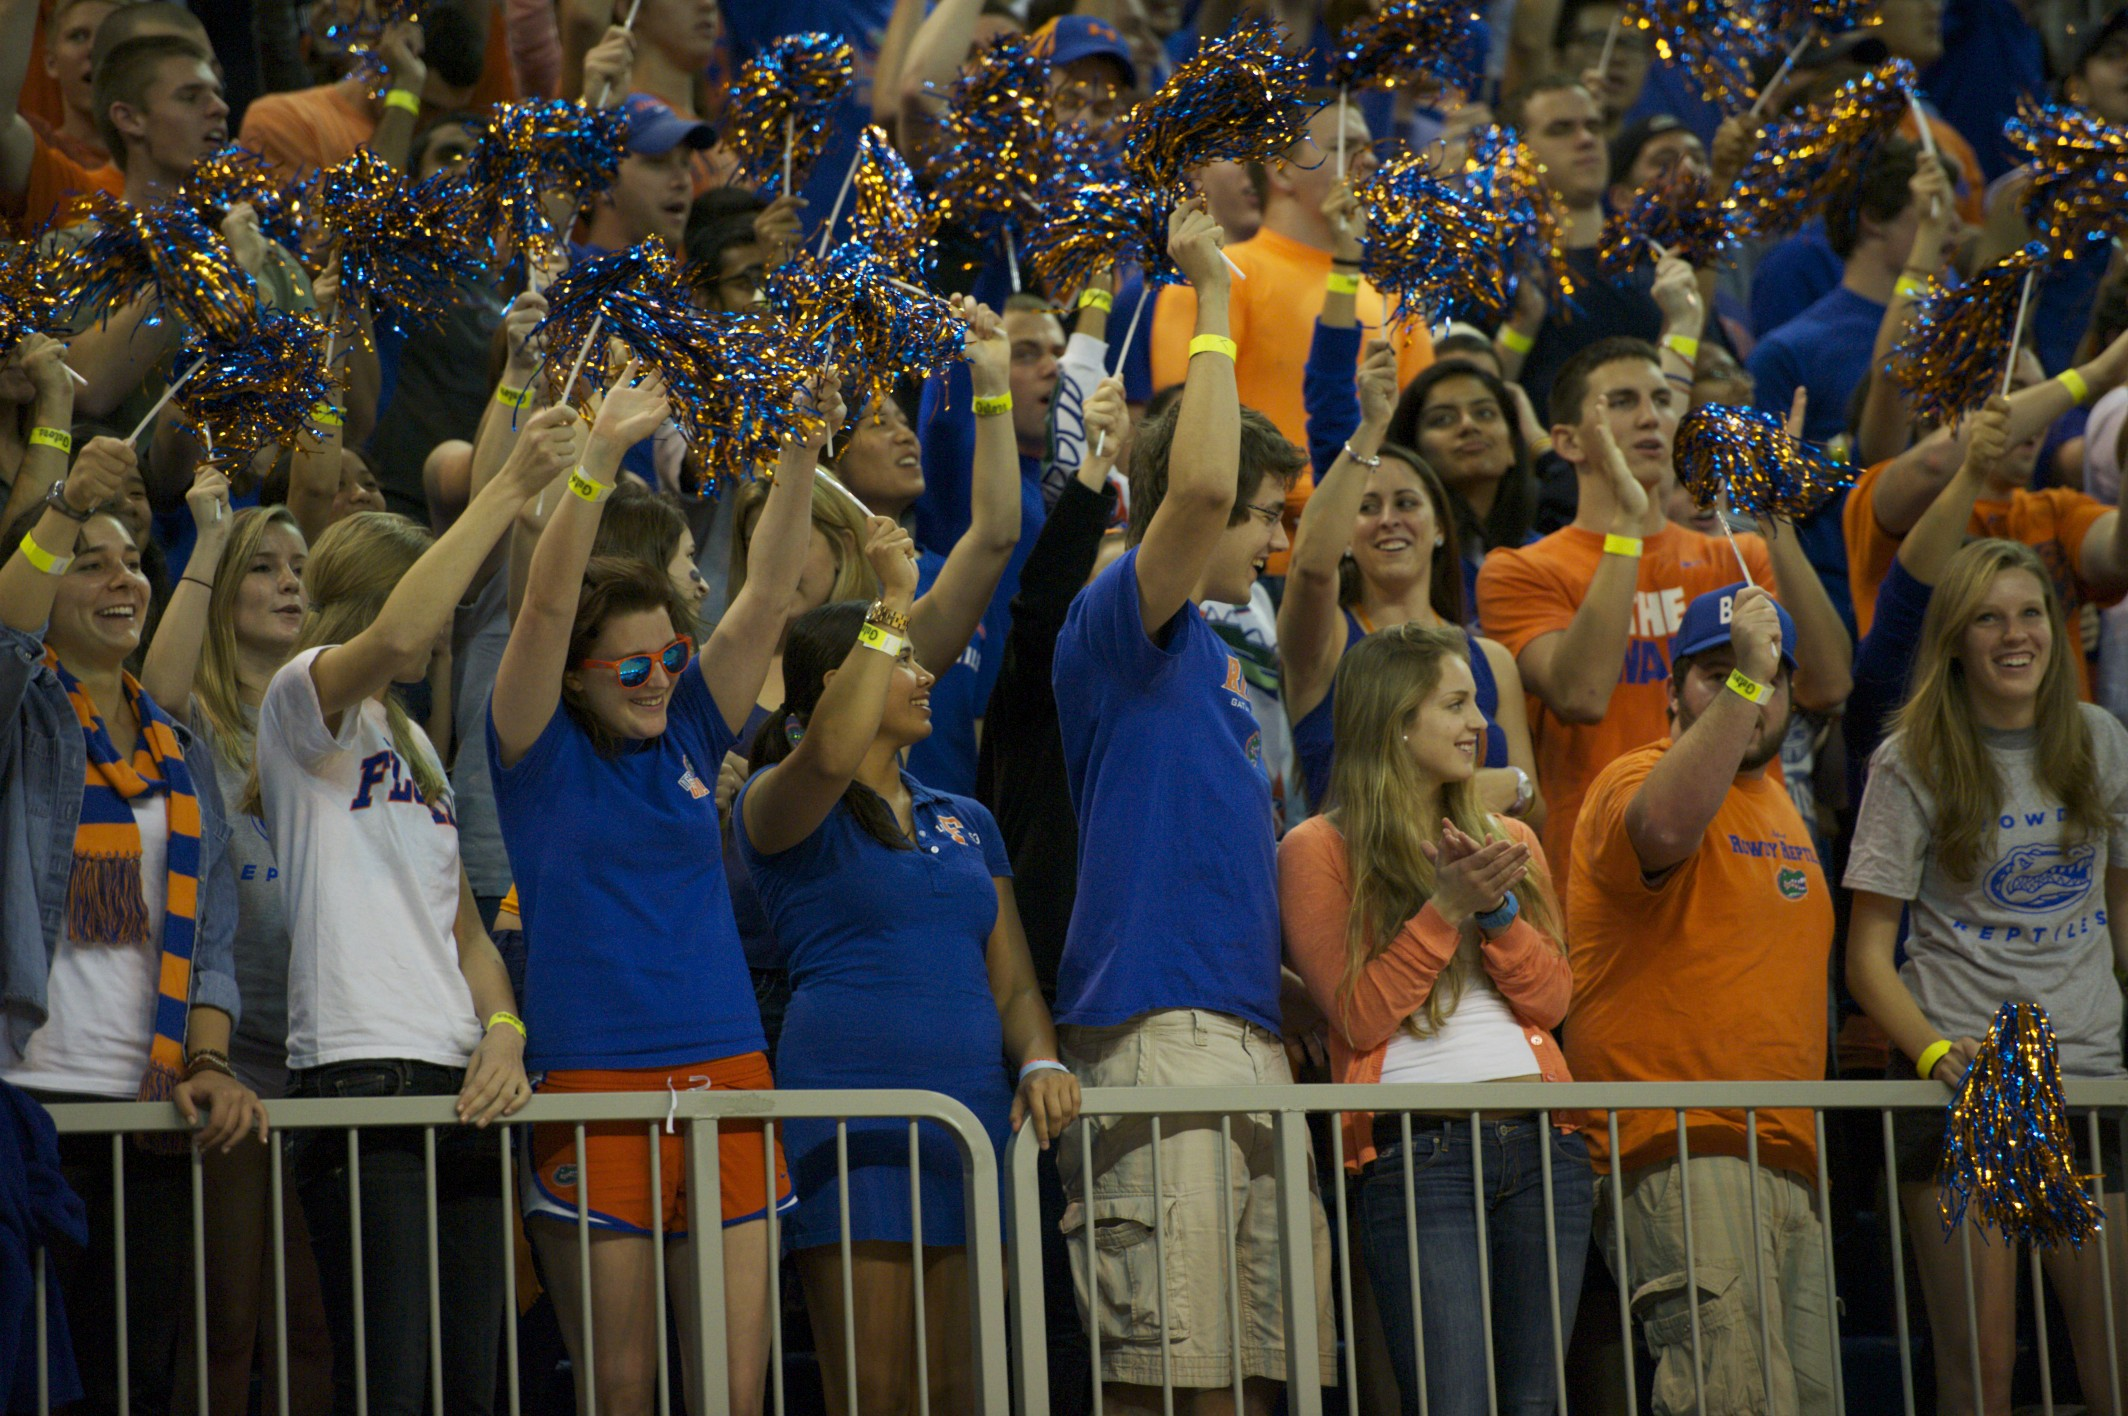 Florida fans filled the stands Wednesday night when the Gators took down the Georgia Bulldogs, 77-44.